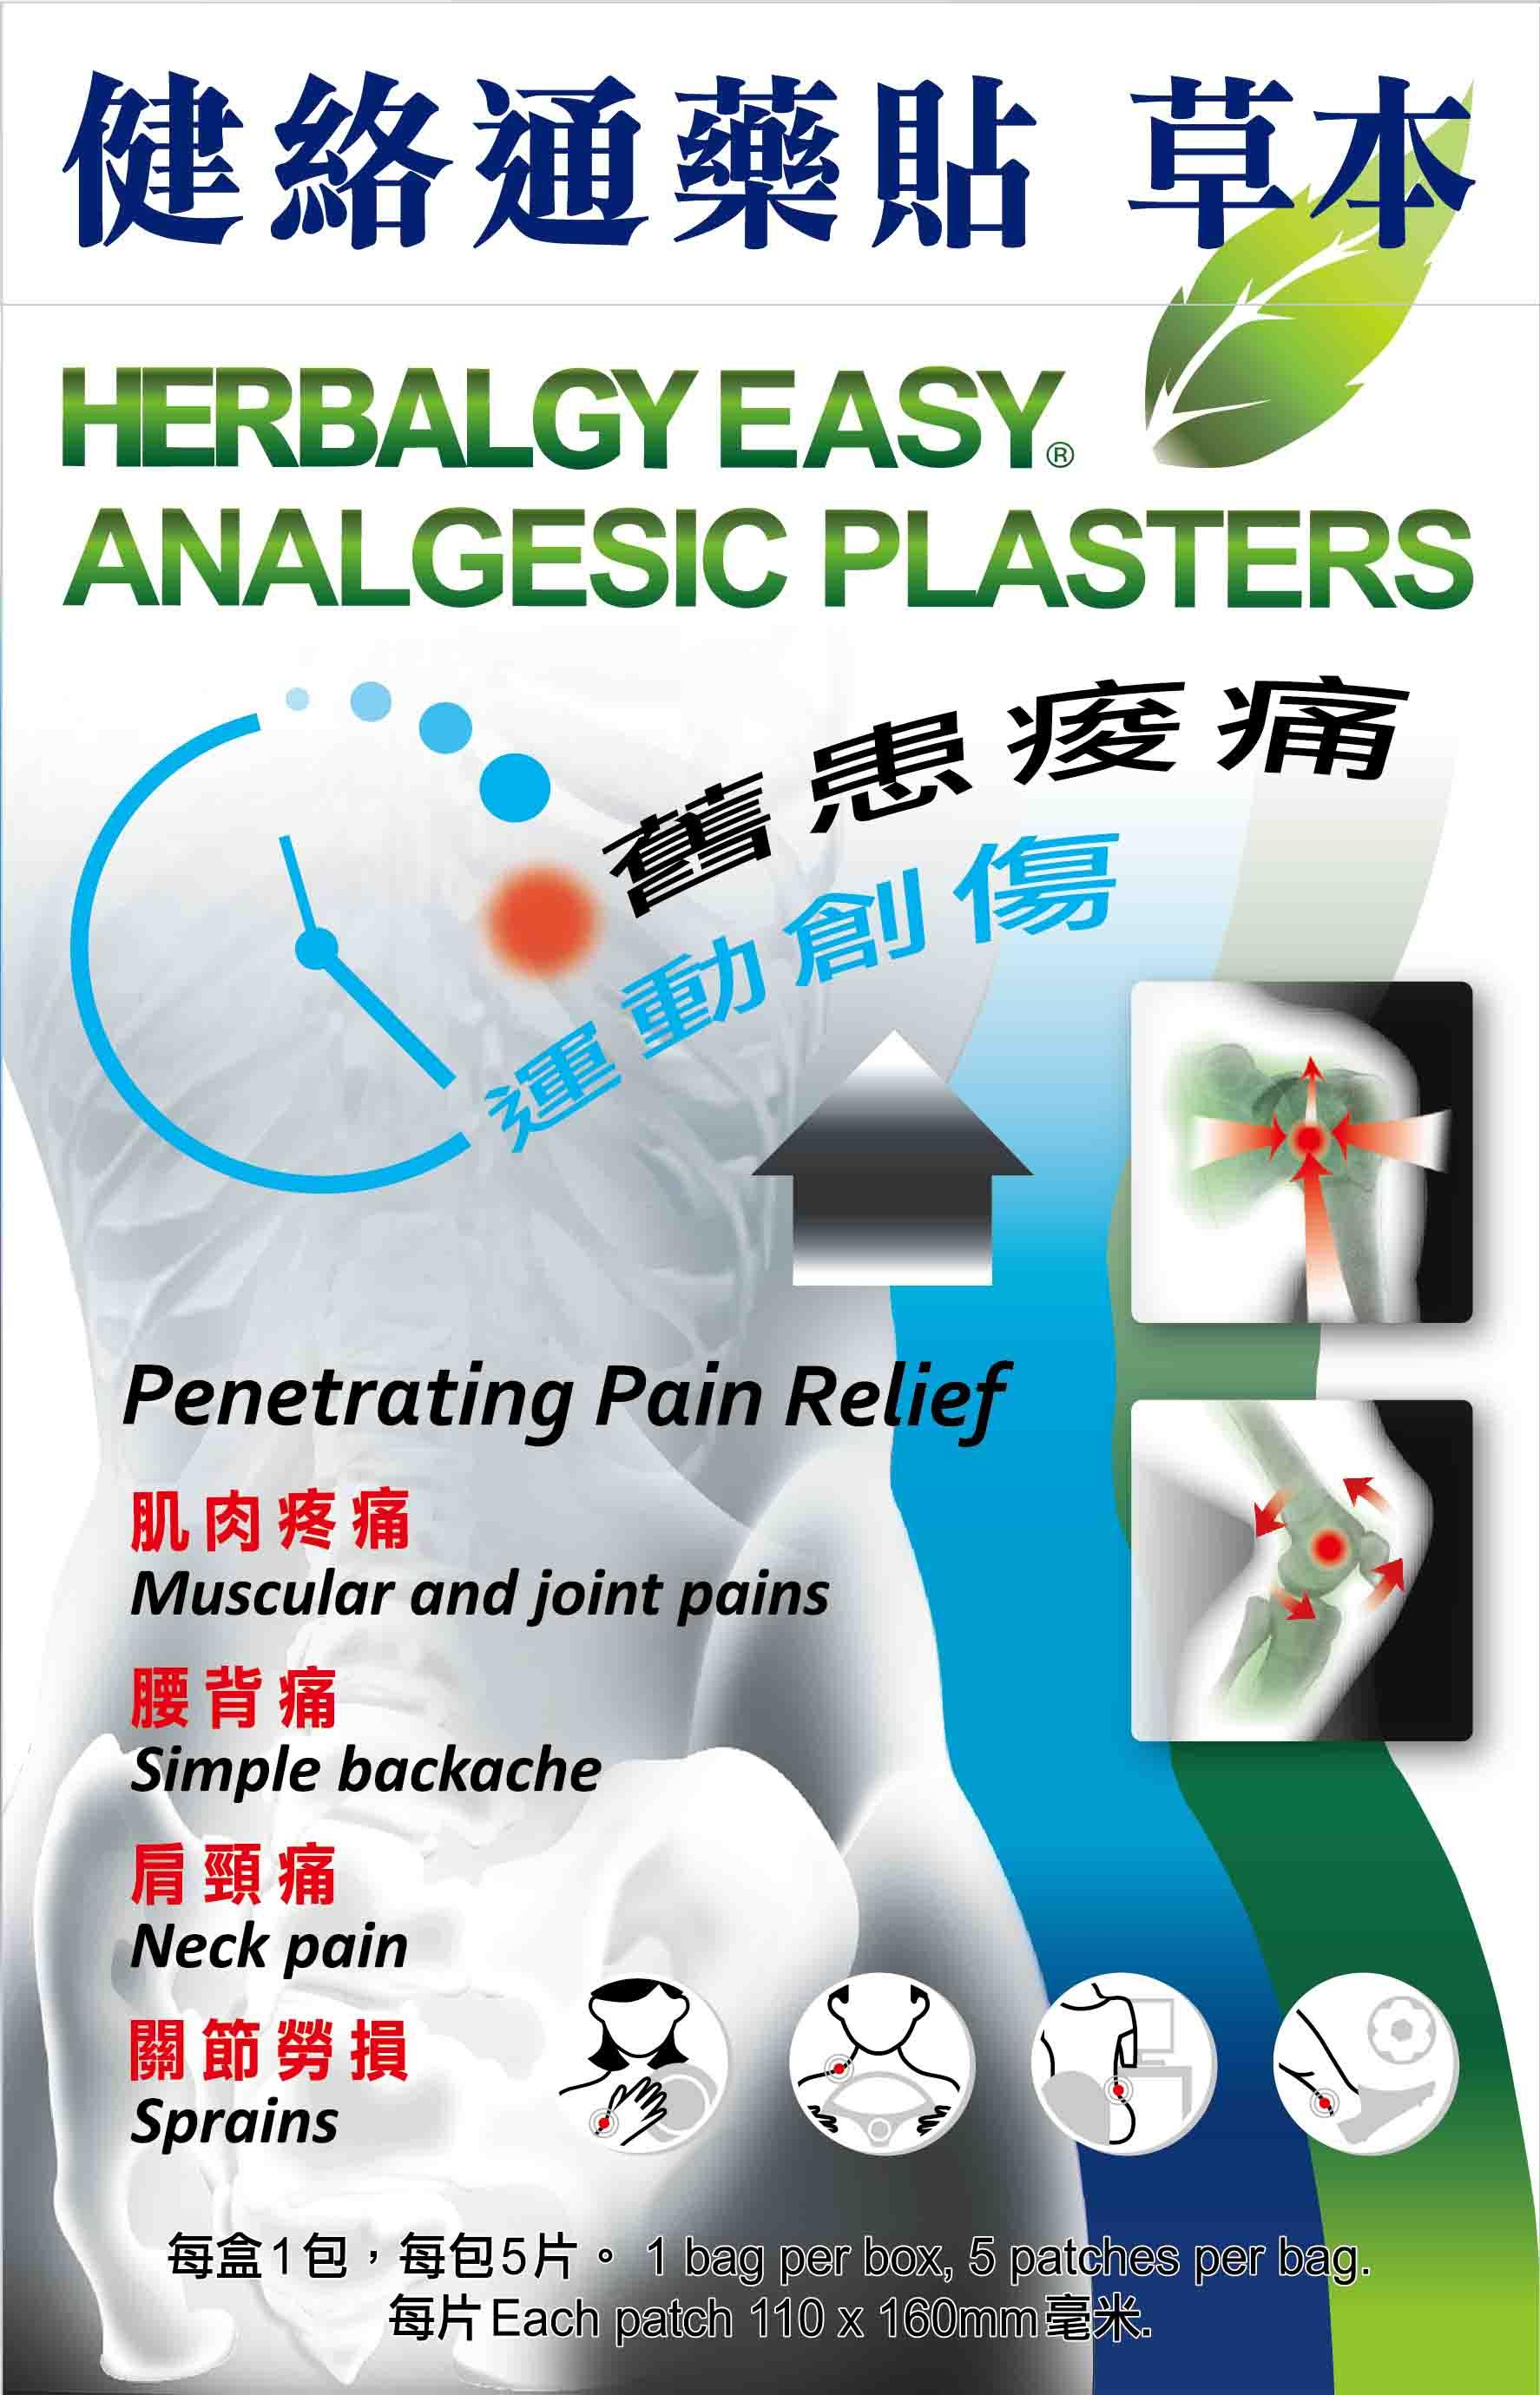 HK-Easy 5 Plaster box_outline_B-02-1.jpg